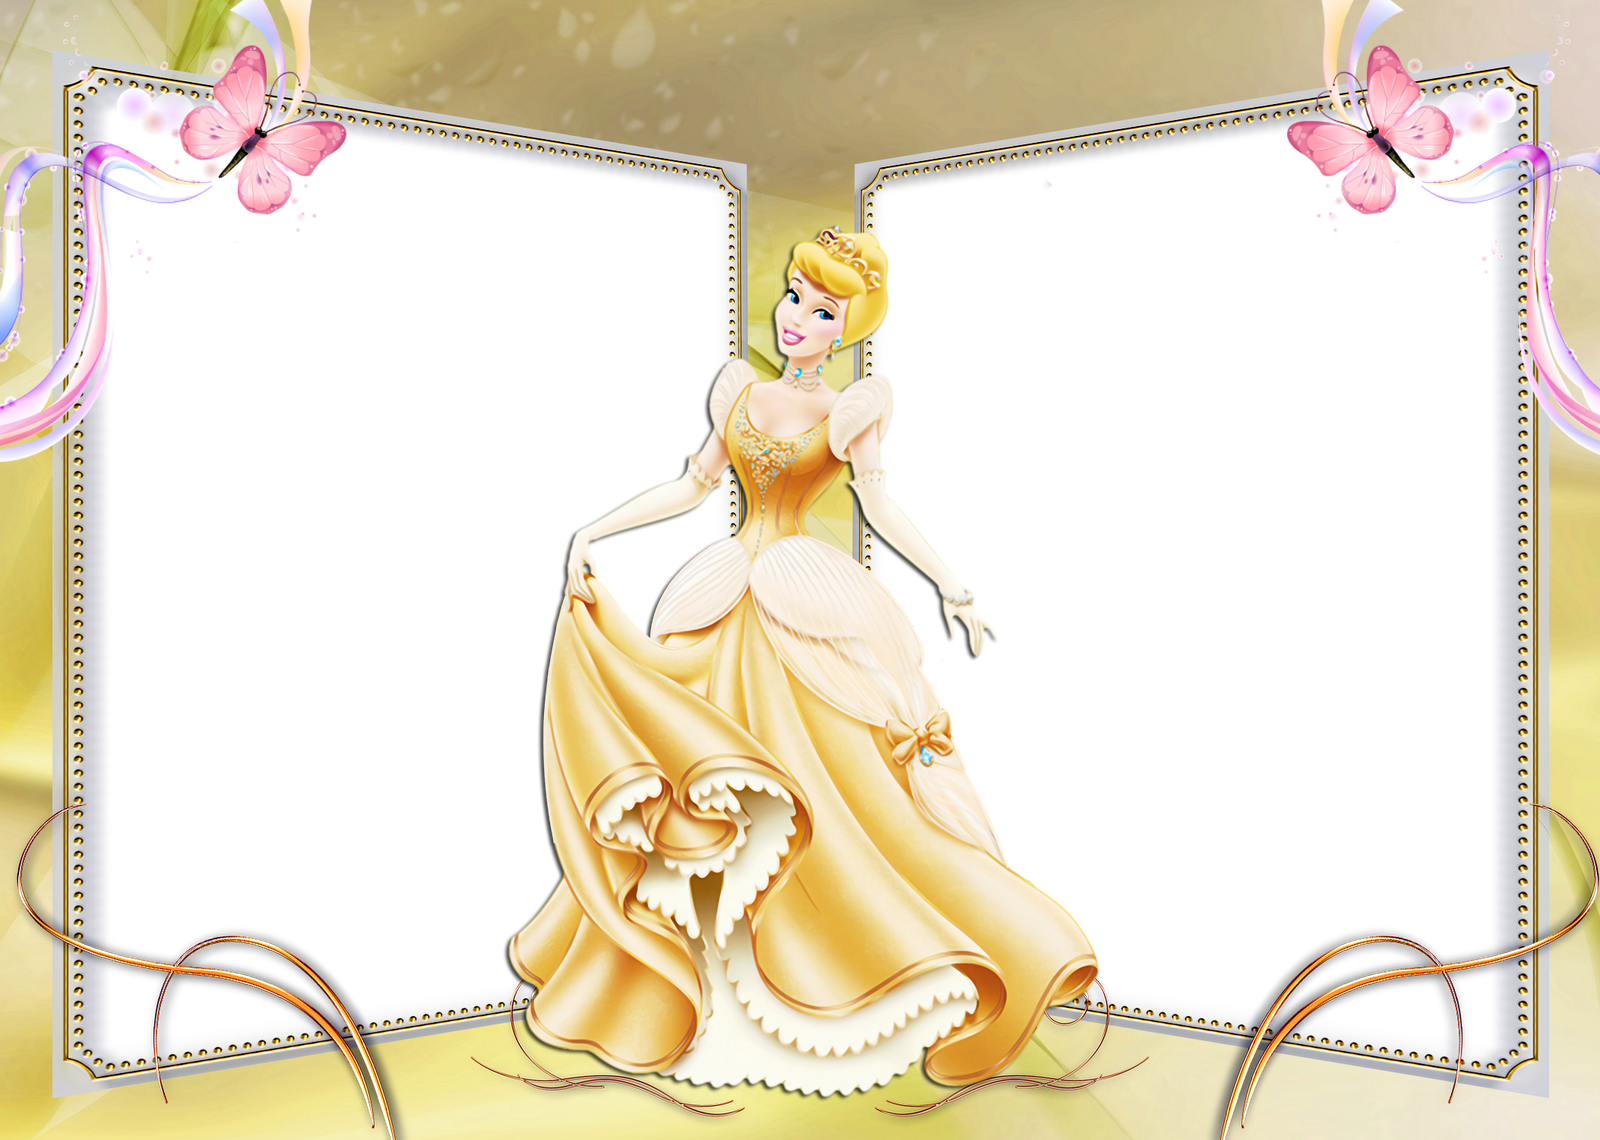 Frame Clipart Disney Princess Pencil And In Color - Frame Disney Princess Png (1600x1140), Png Download